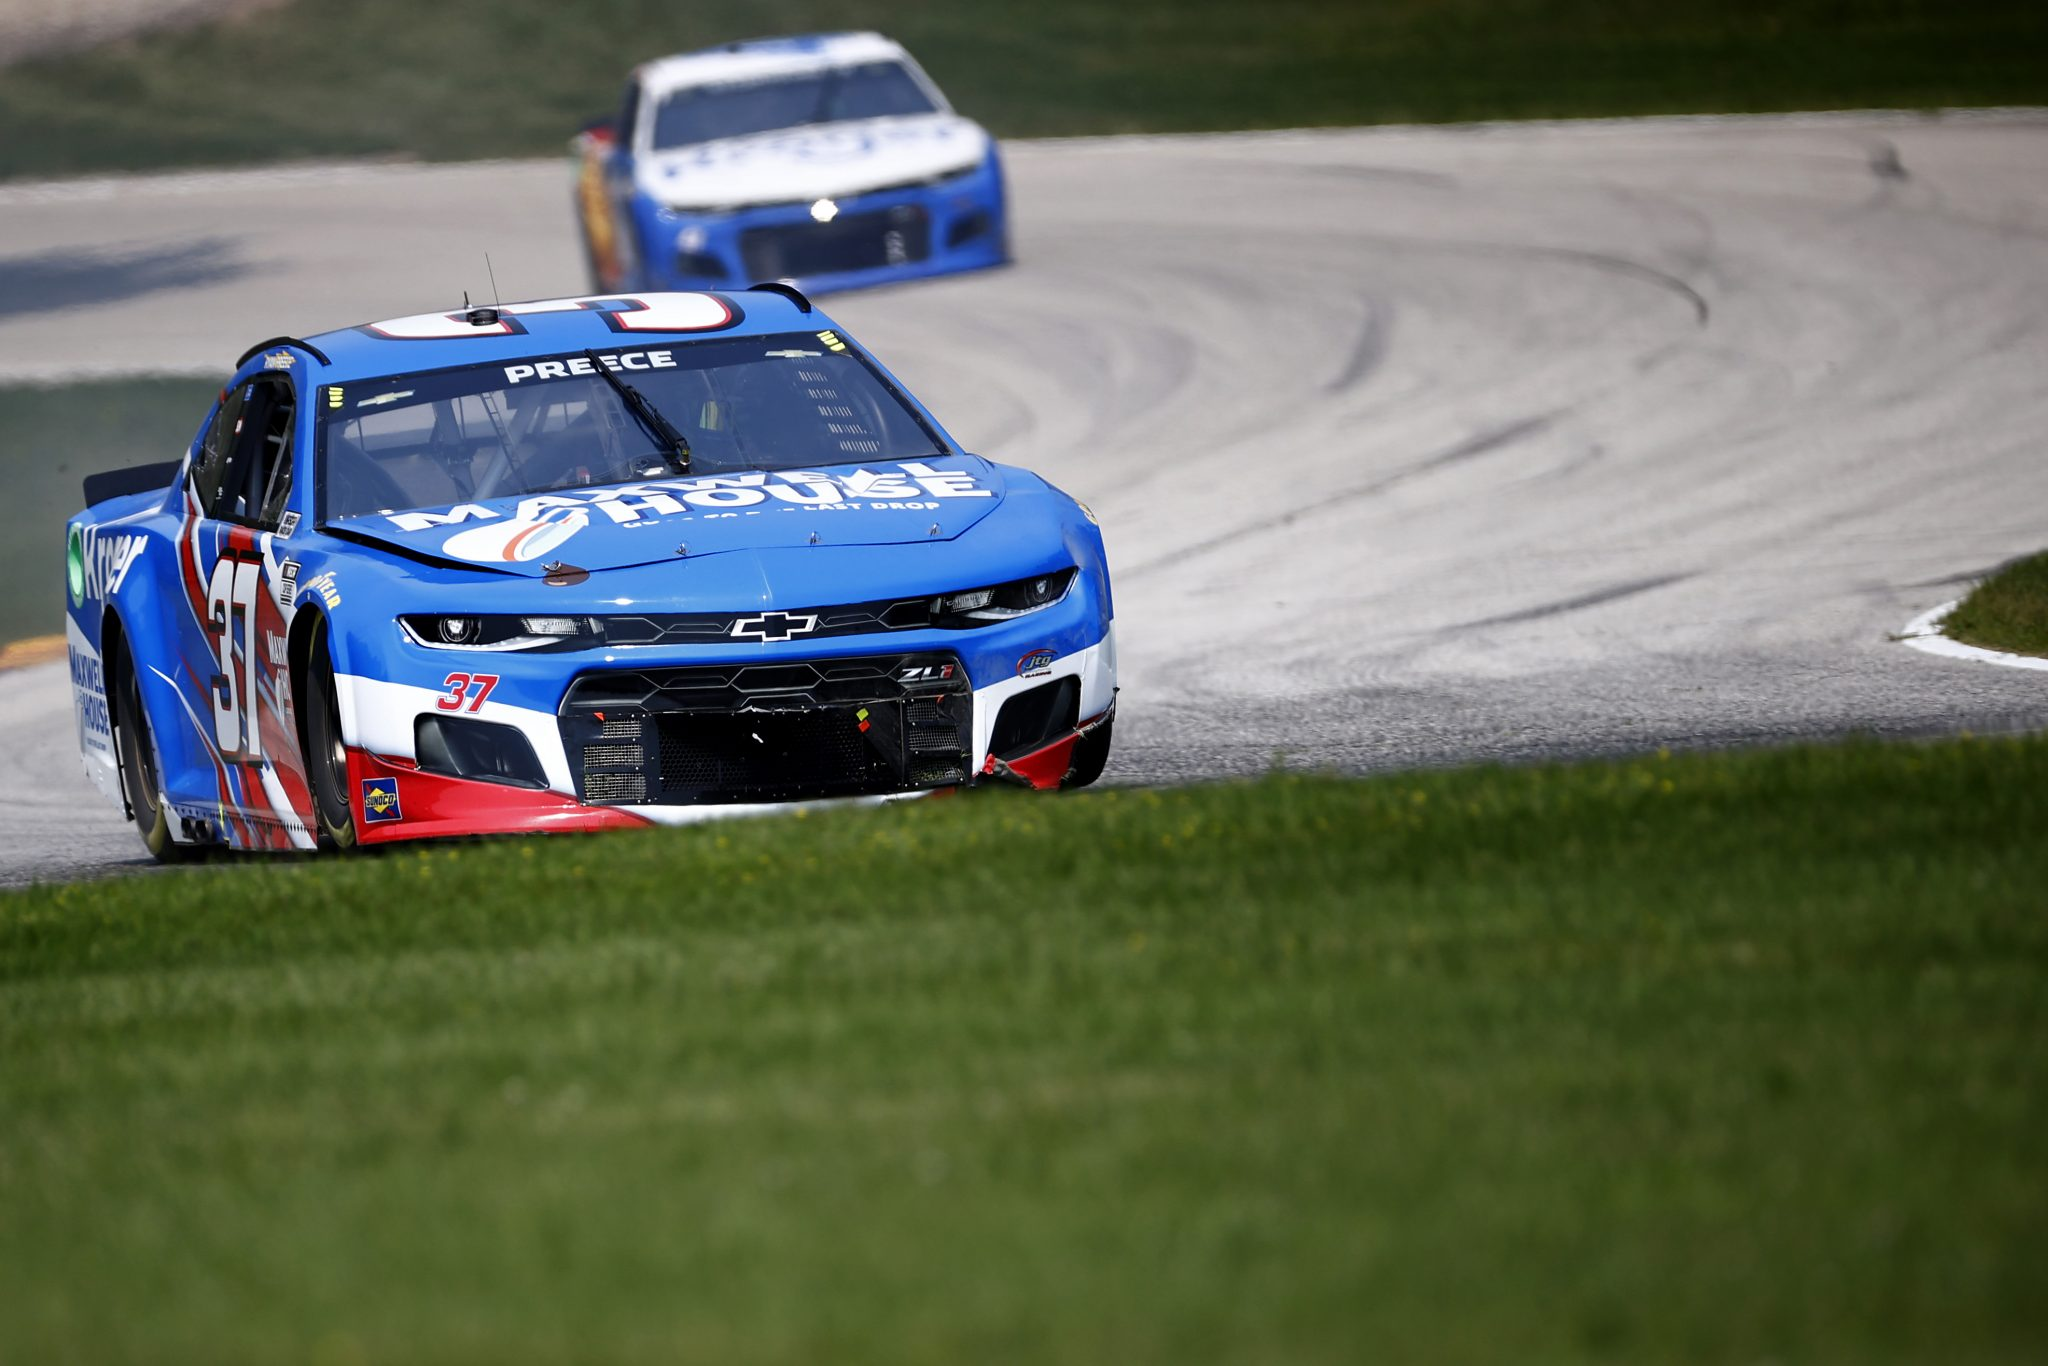 ELKHART LAKE, WISCONSIN - JULY 03: Ryan Preece, driver of the #37 Maxwell House/Kroger Chevrolet, drives during practice for the NASCAR Cup Series Jockey Made in America 250 Presented by Kwik Trip at Road America on July 03, 2021 in Elkhart Lake, Wisconsin. (Photo by Jared C. Tilton/Getty Images) | Getty Images